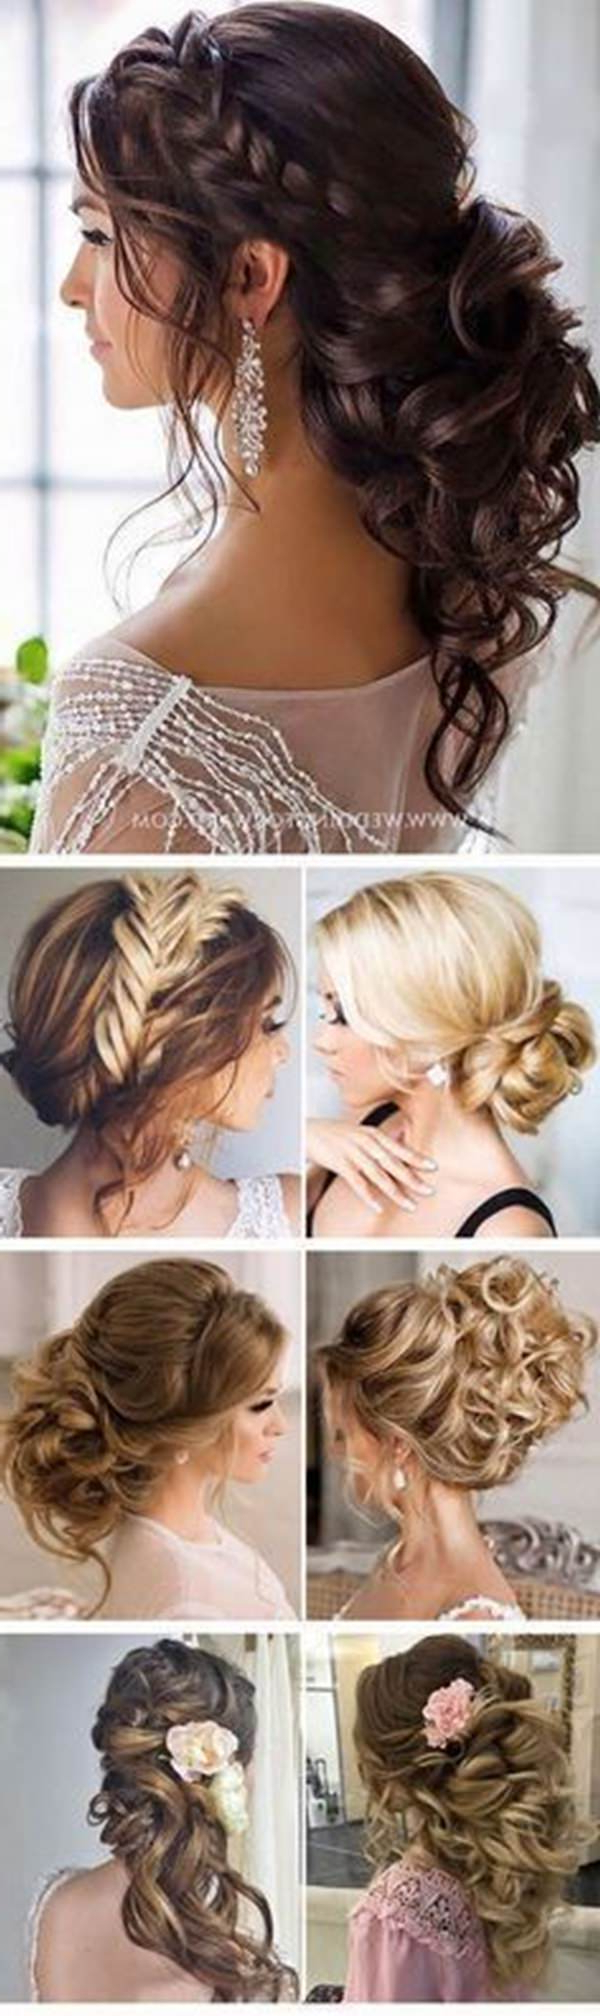 Famous Accent Braid Prom Updos Intended For 154 Updos For Long Hair Featuring Beautiful Braids And Buns (View 17 of 20)